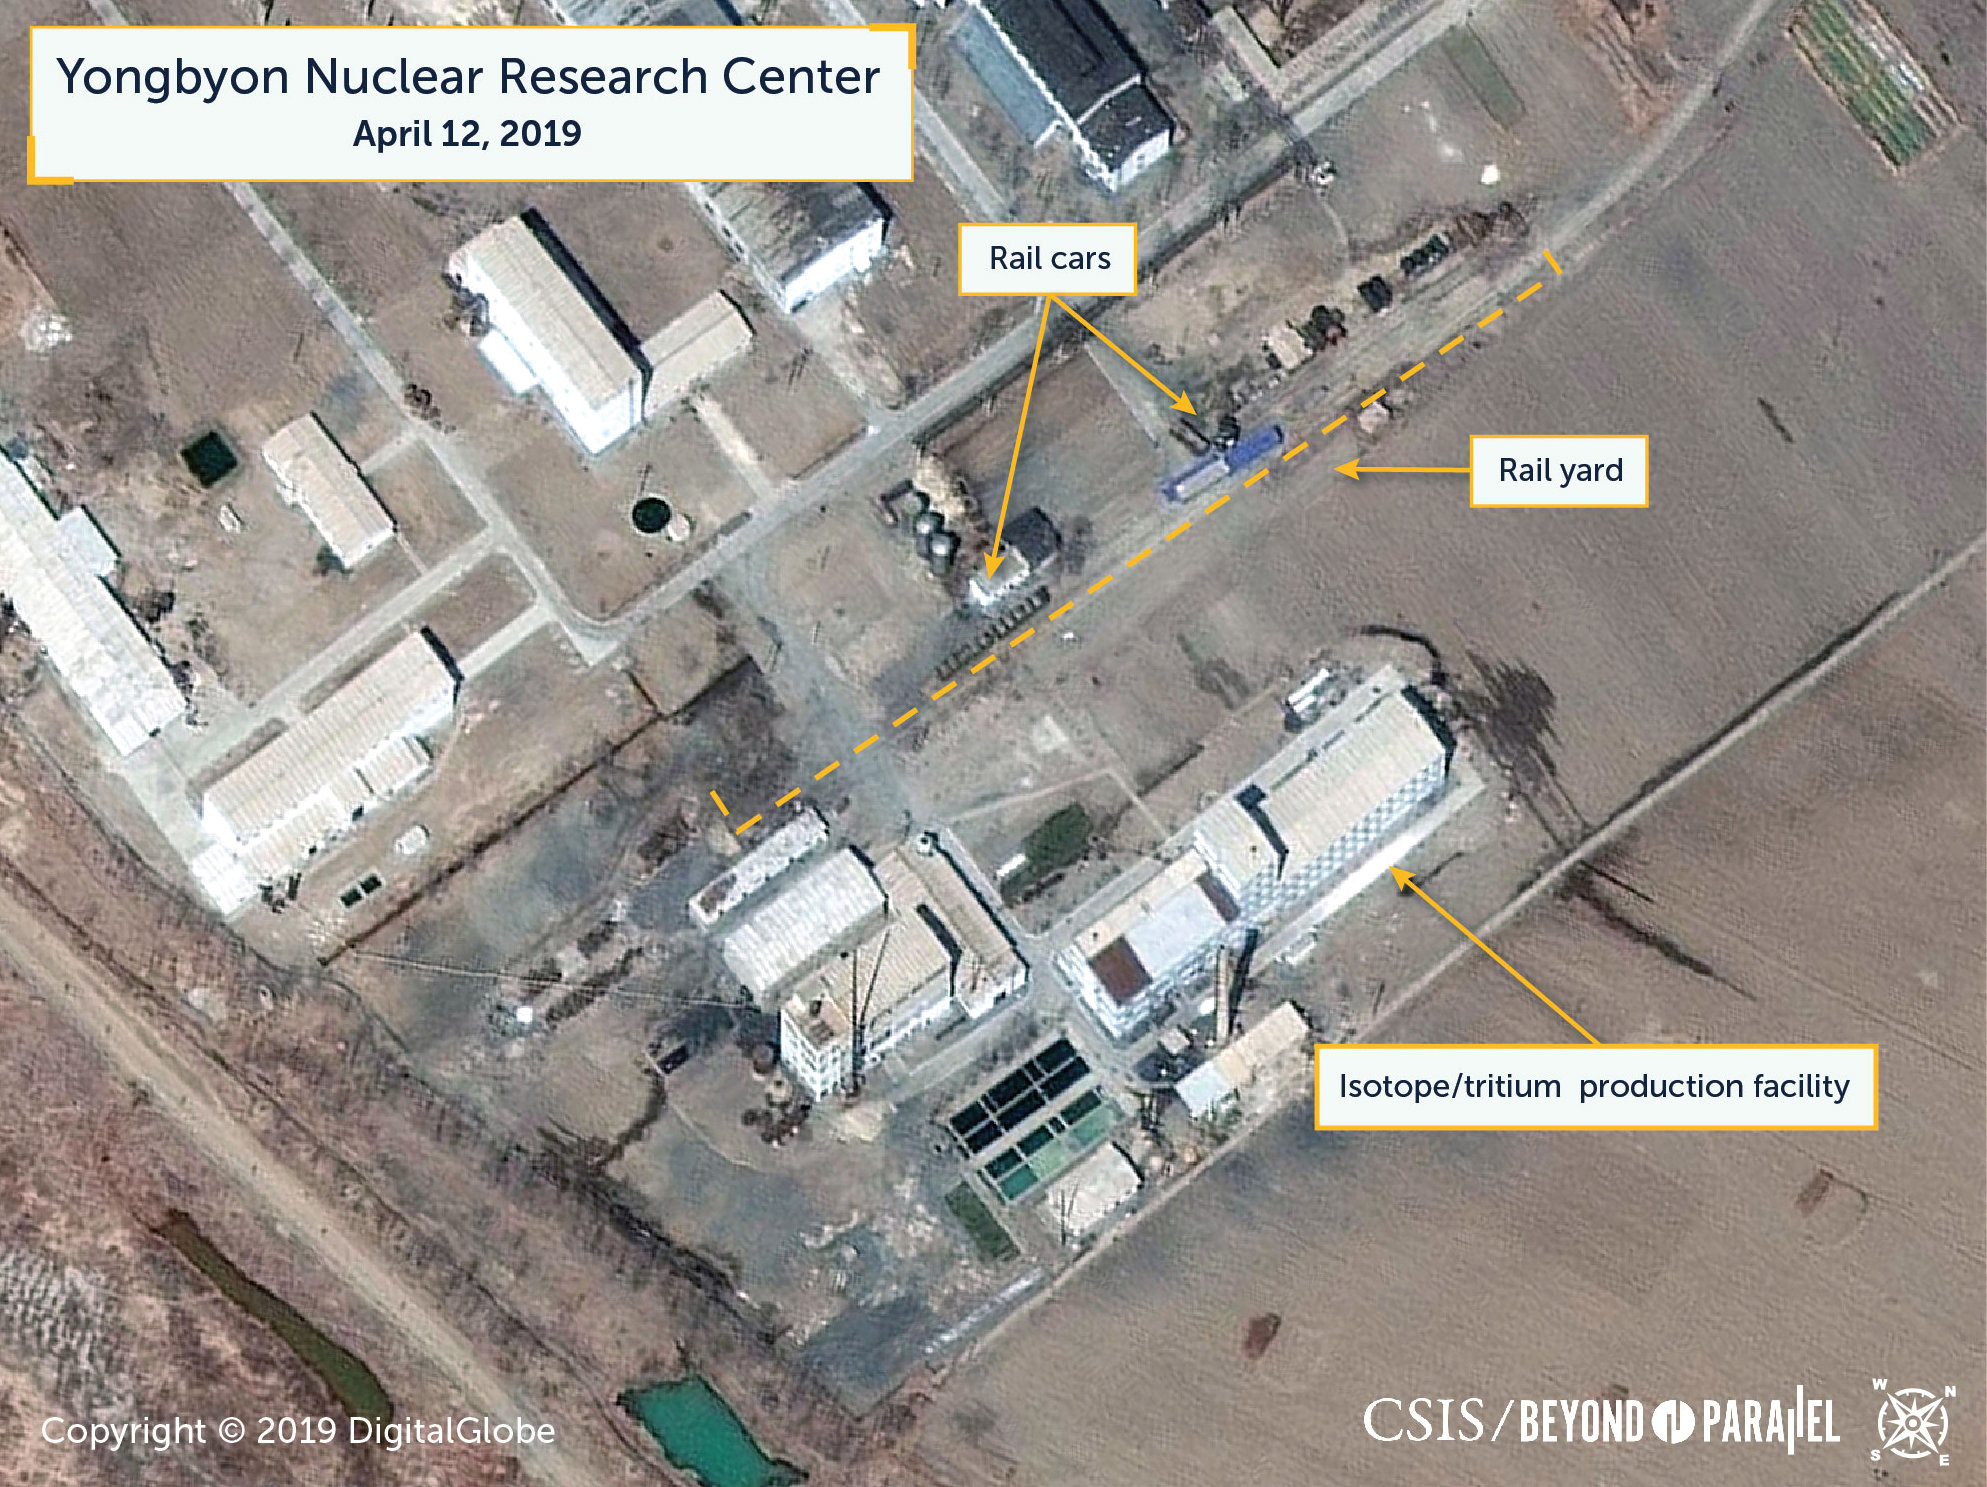 Commercial satellite imagery shows what researchers of Beyond Parallel, a CSIS project, describe as specialized rail cars at the Yongbyon Nuclear Research Center in North Pyongan Province, North Korea, in this image taken April 12 and released Tuesday. | CSIS / BEYOND PARALLEL / DIGITALGLOBE 2019 / VIA REUTERS